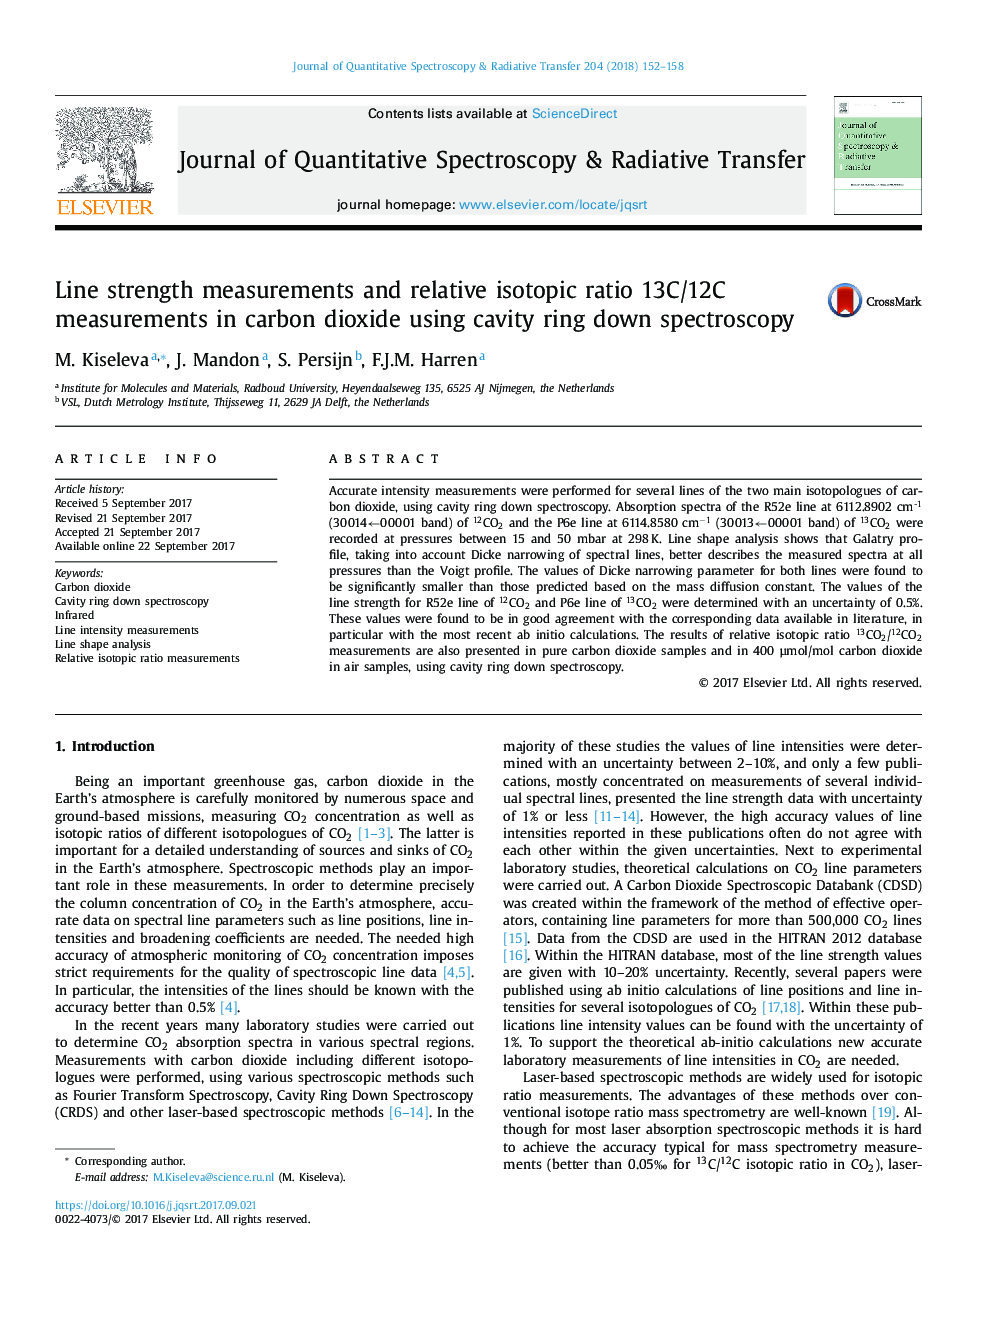 Line strength measurements and relative isotopic ratio 13C/12C measurements in carbon dioxide using cavity ring down spectroscopy